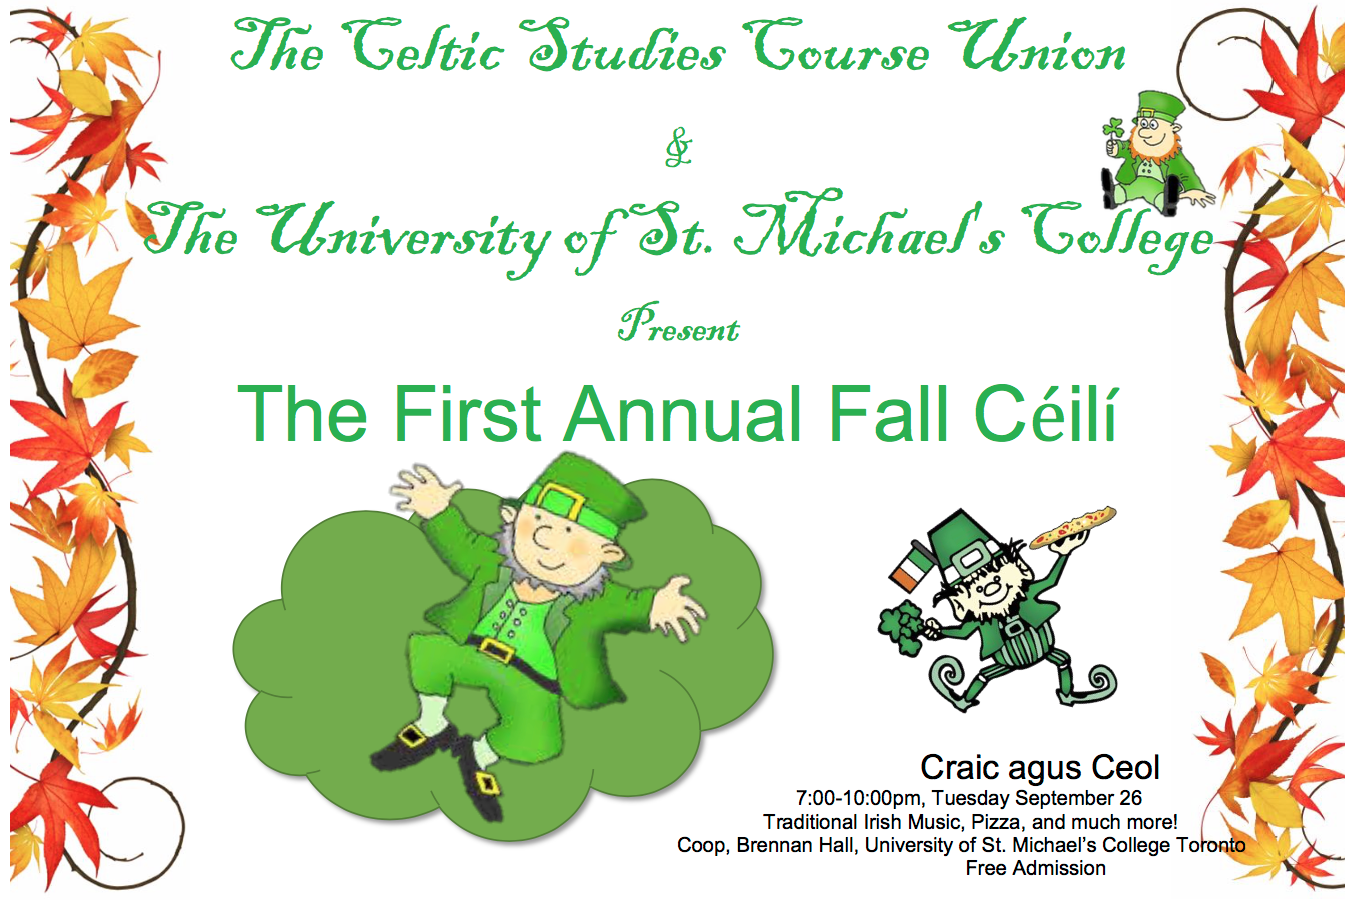 Craic agus Ceol at the First Annual Fall Ceili